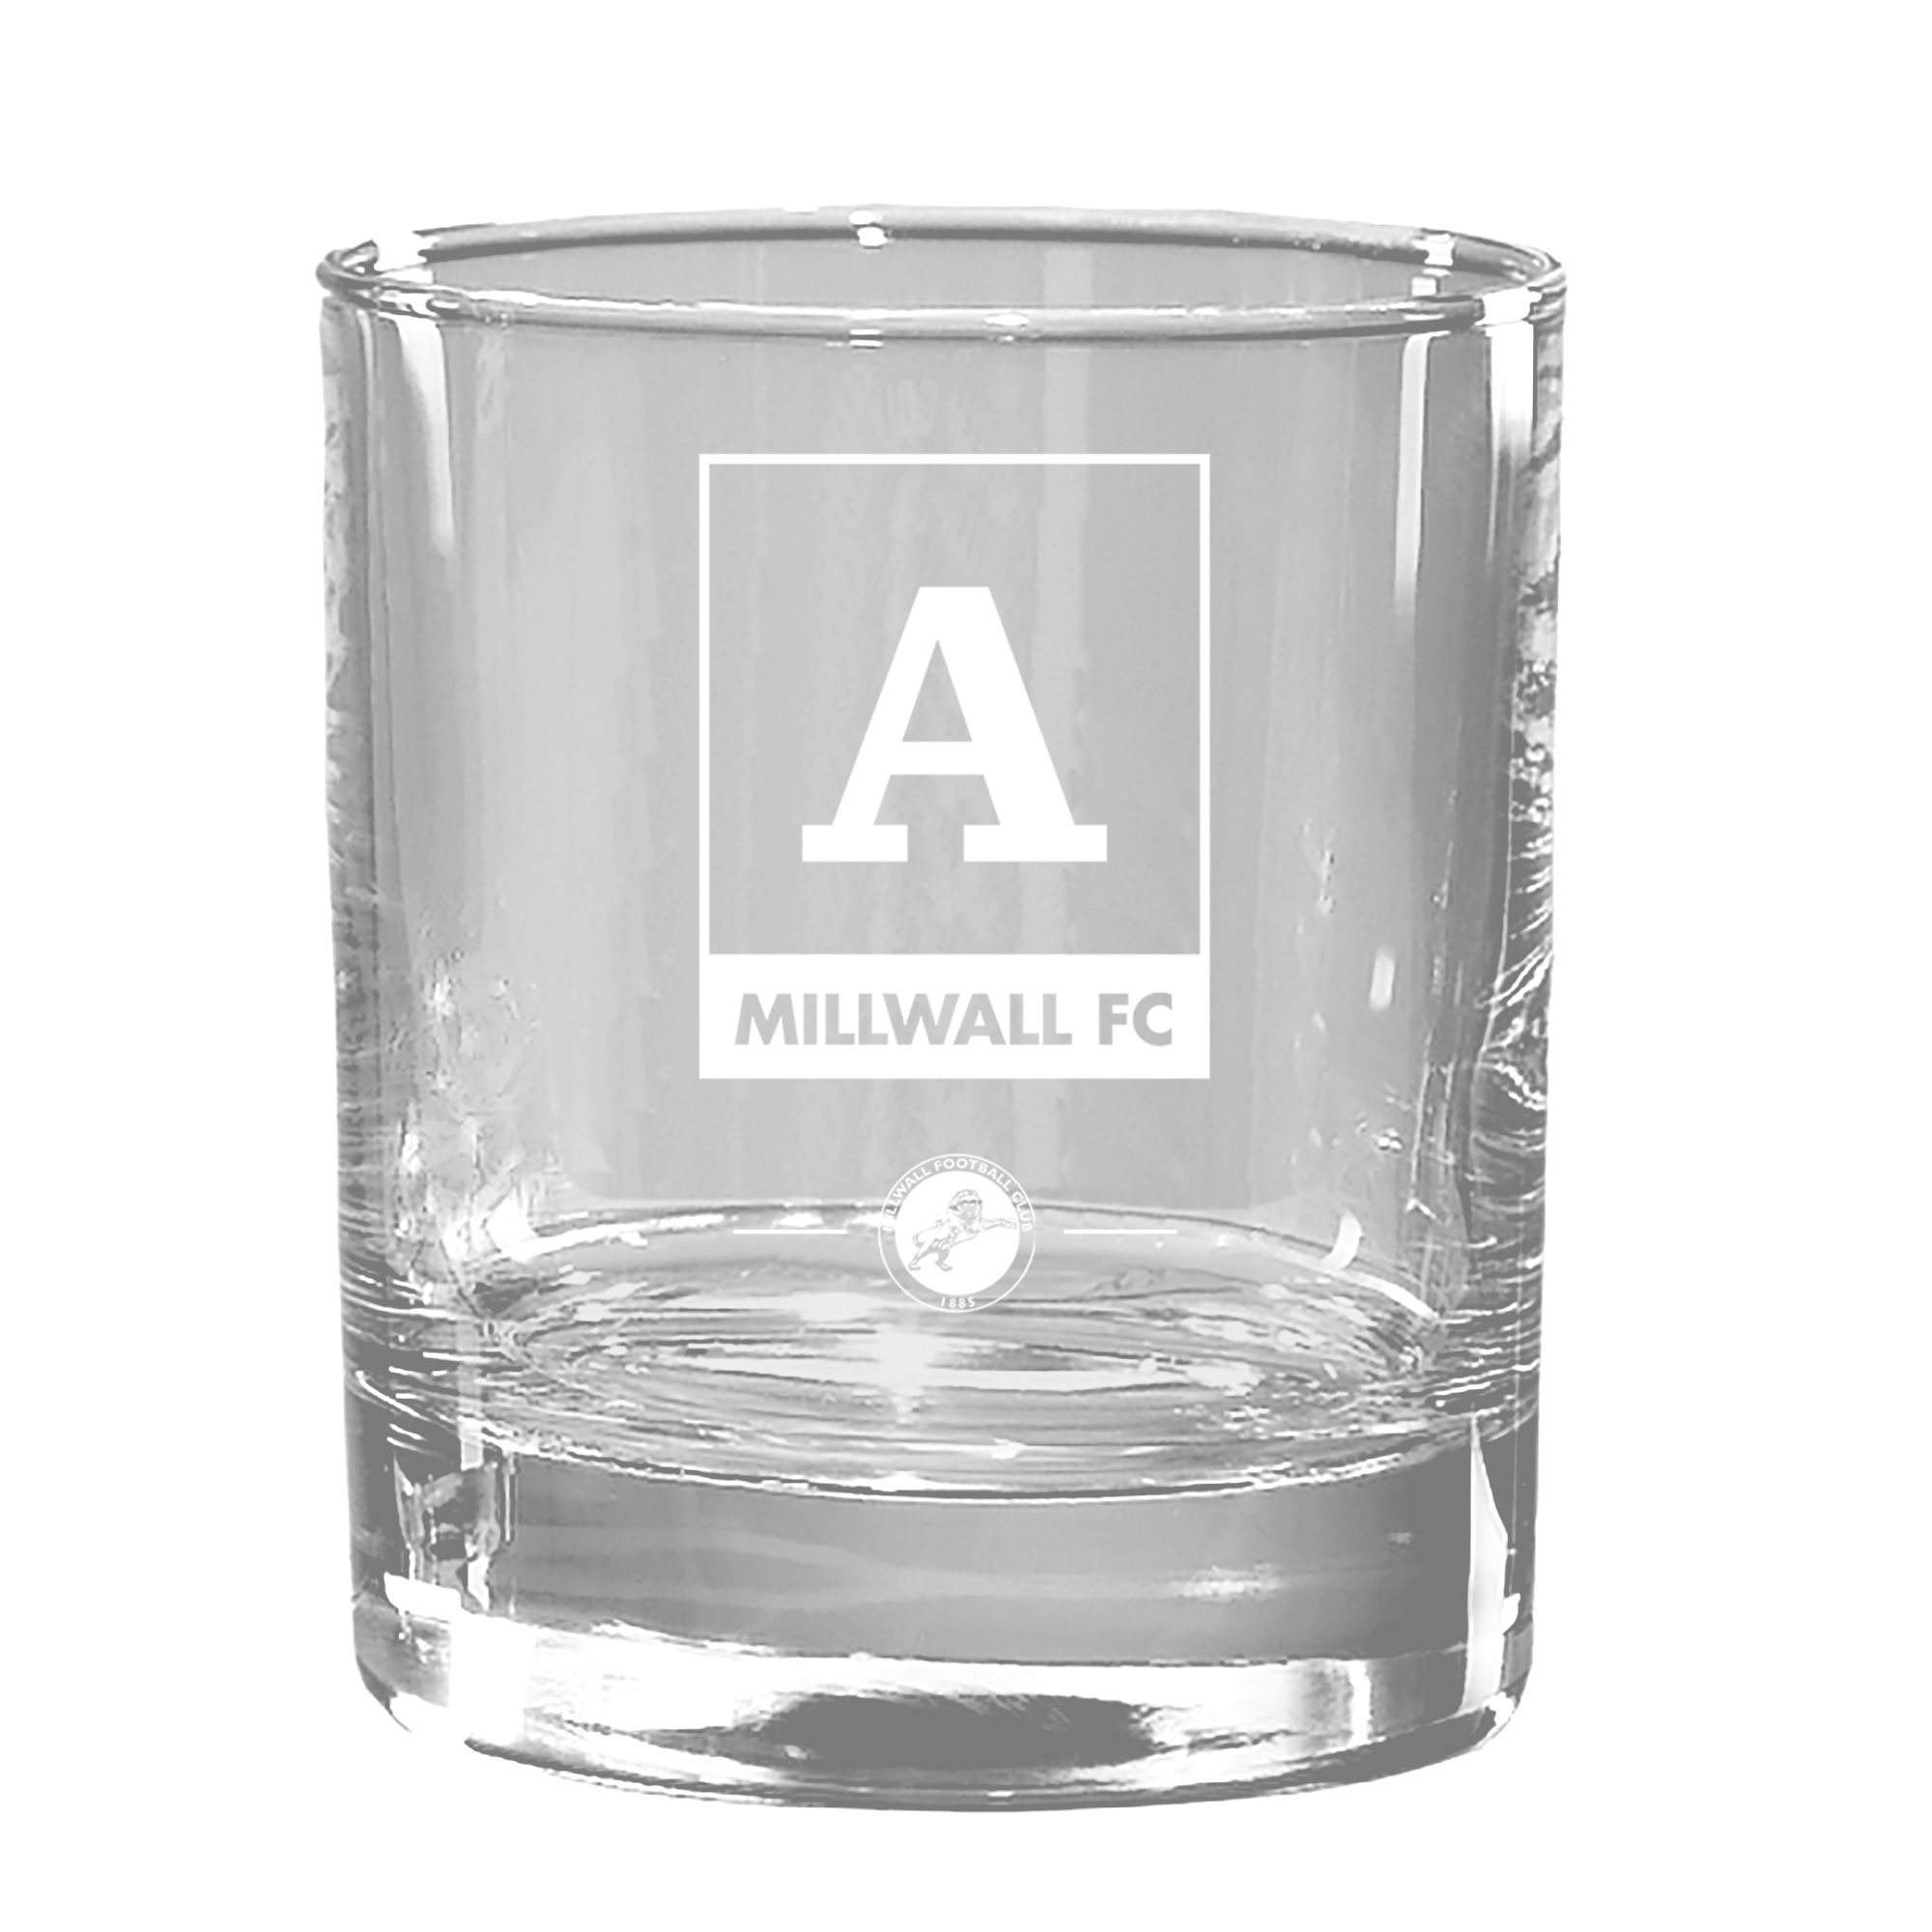 Millwall Monogram Old Fashioned Whisky Tumbler